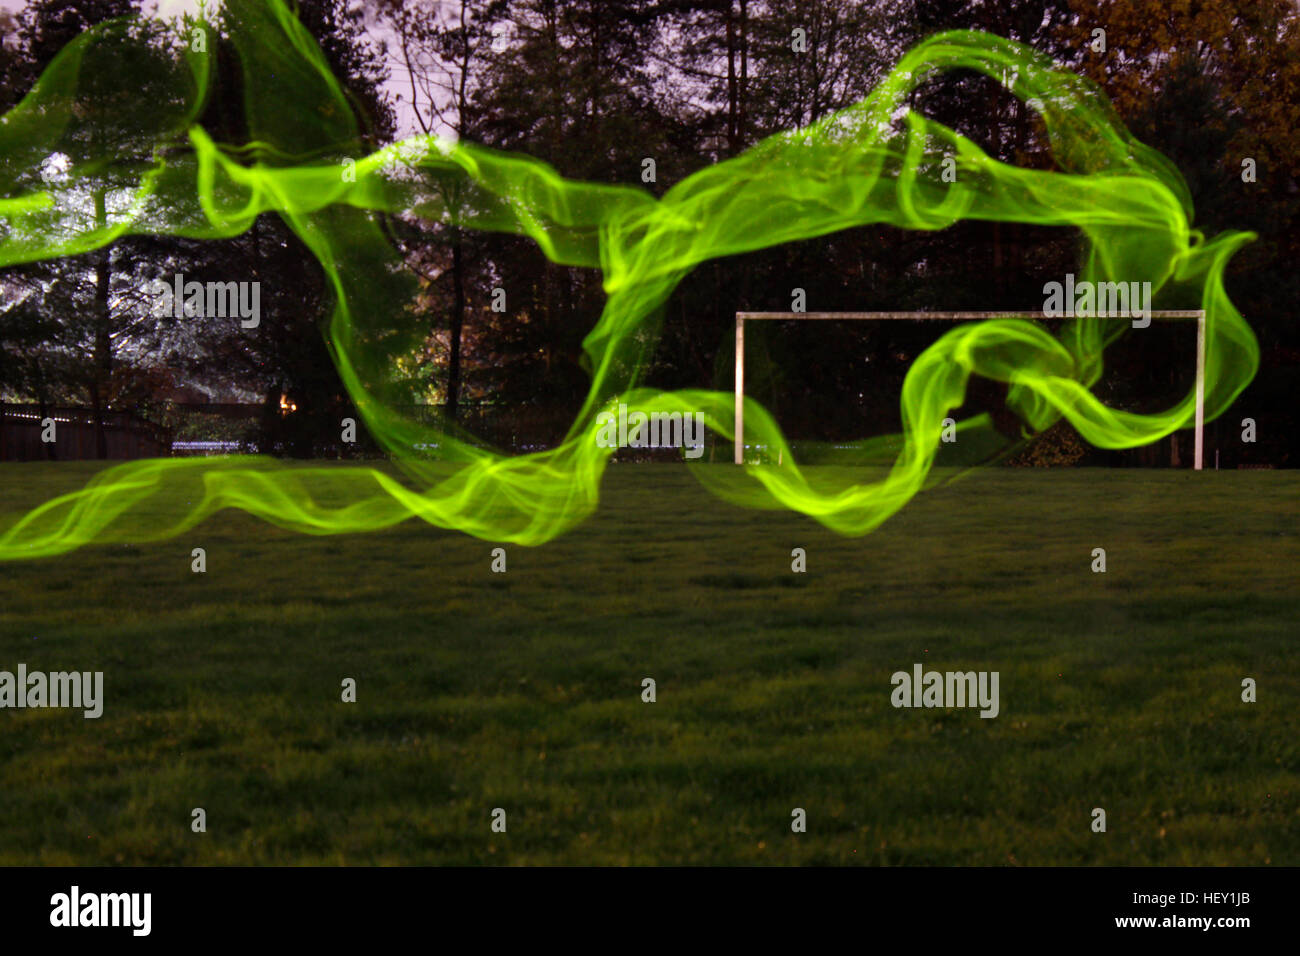 Green ectoplasm moving through the green grass. - Stock Image